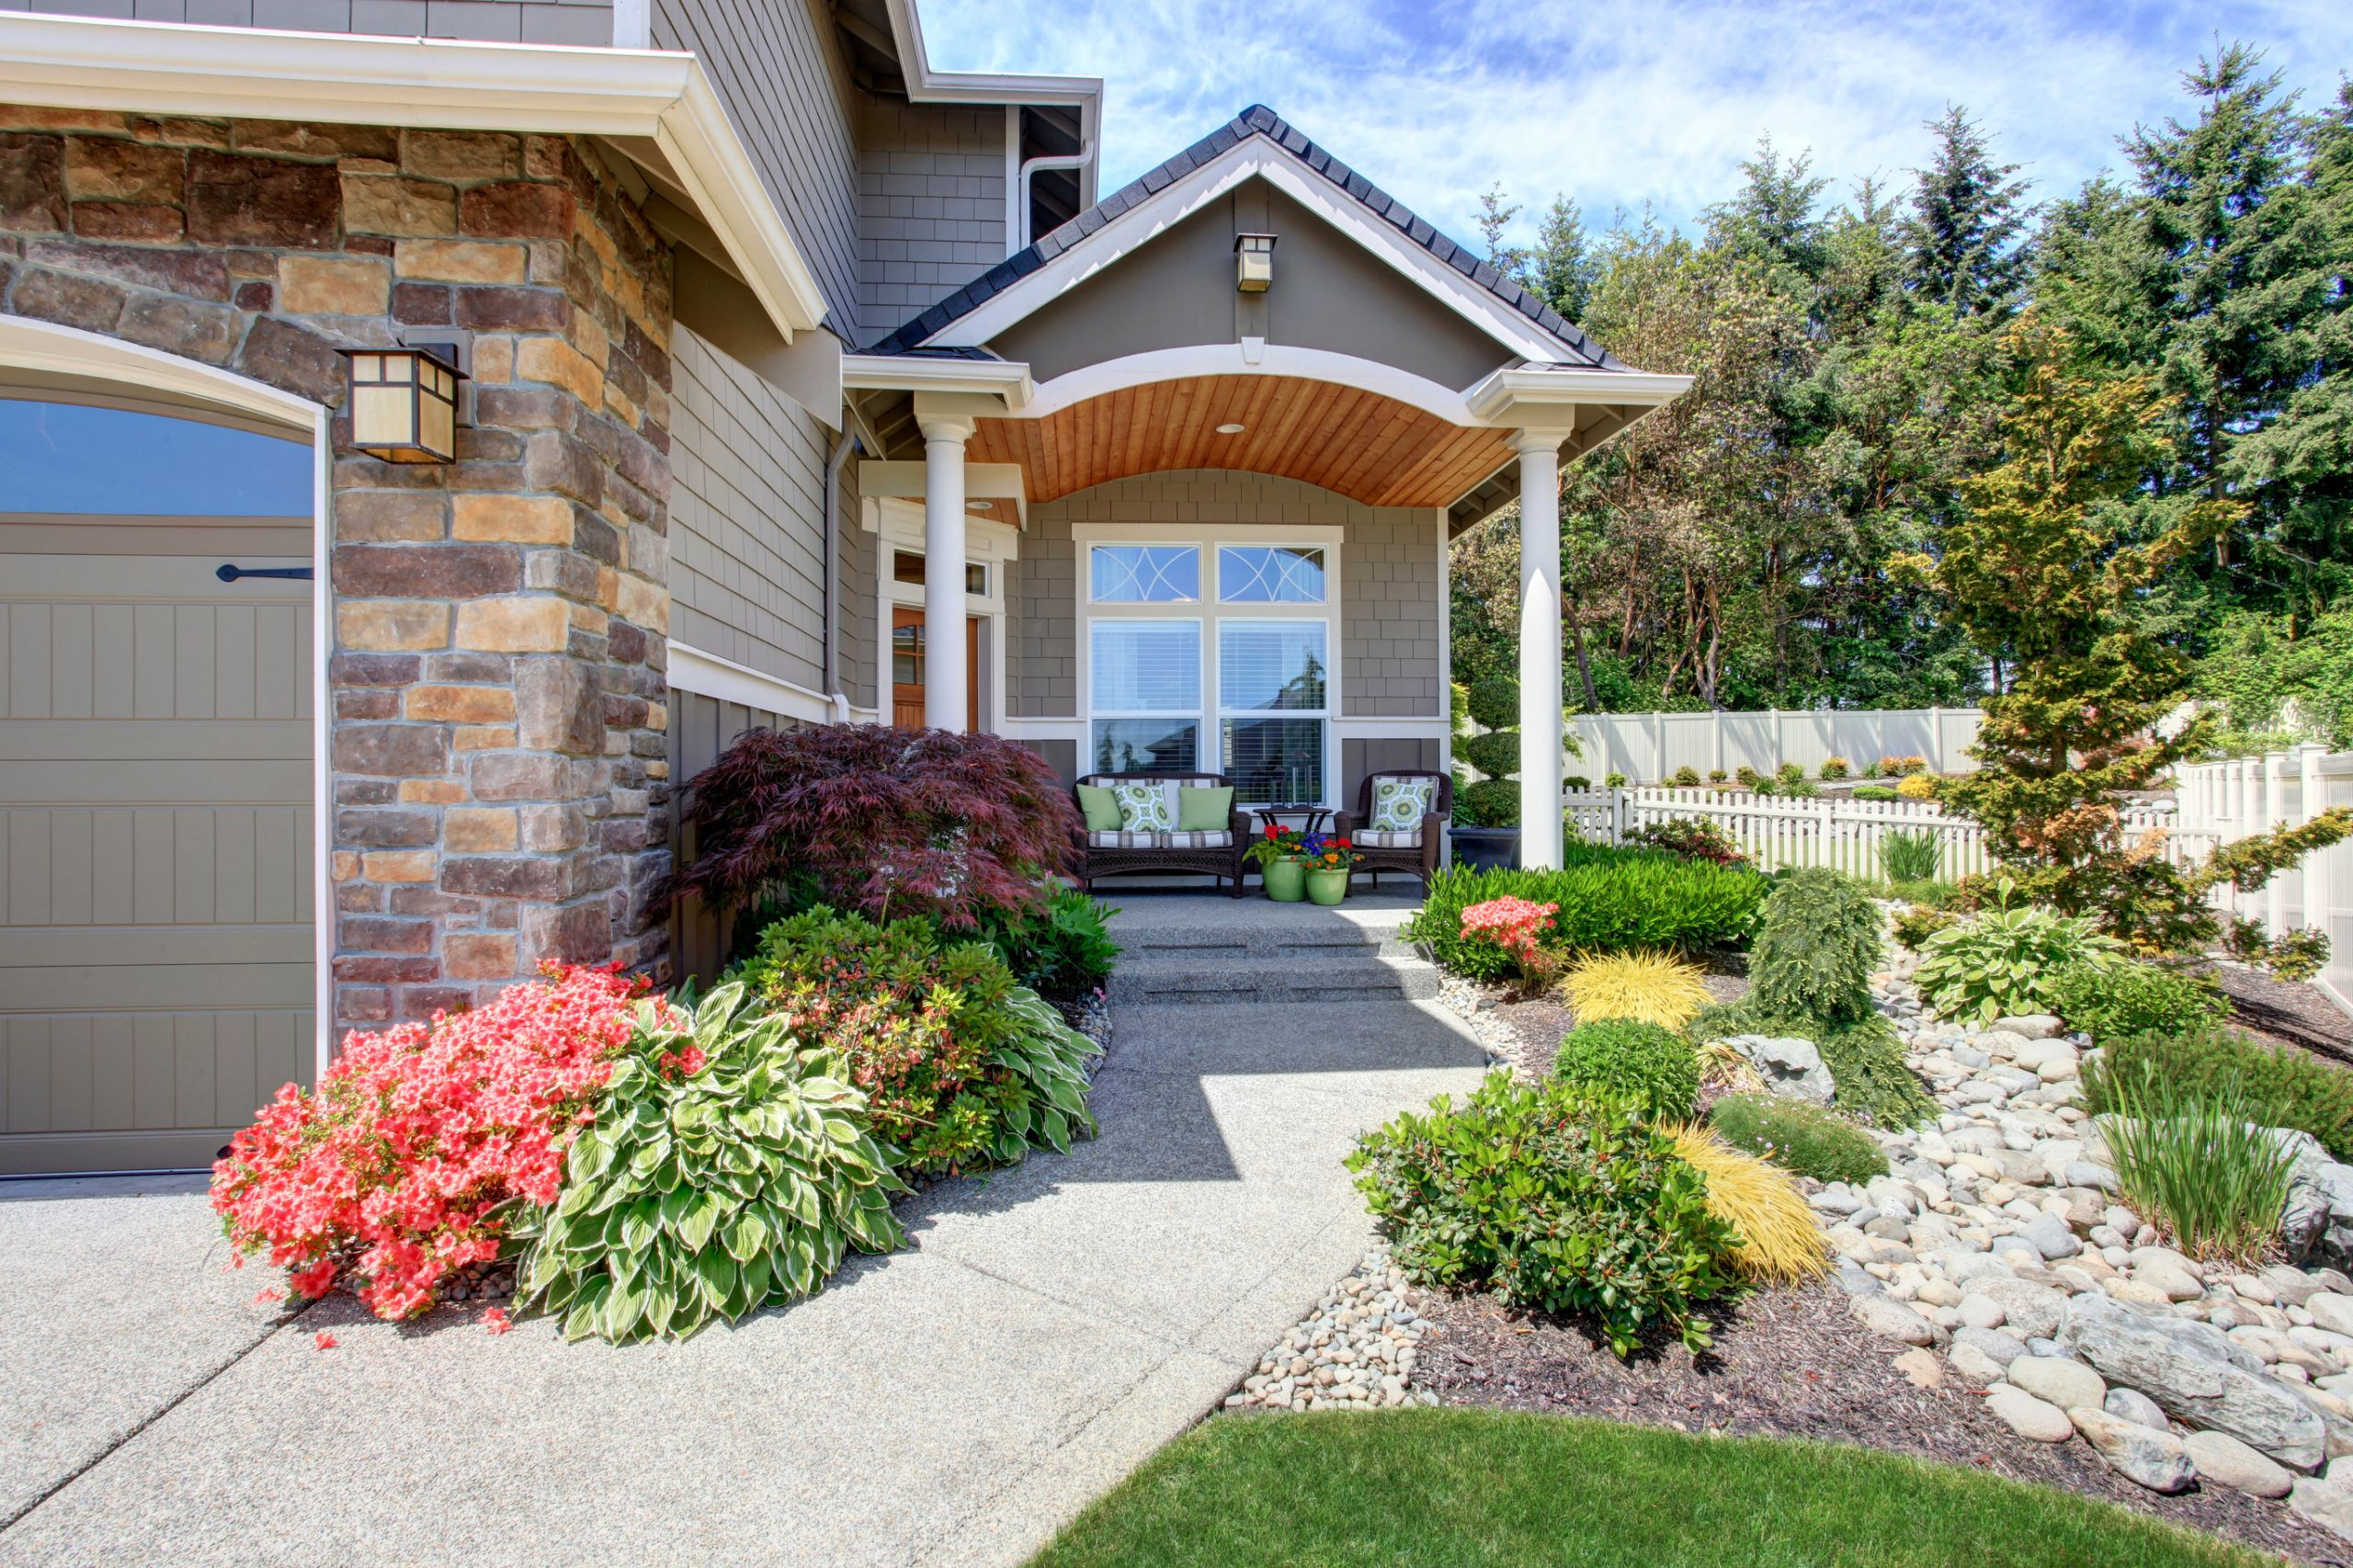 Outdoor Landscape Curb Appeal  Curb Appeal Landscaping Garrison s Landscaping